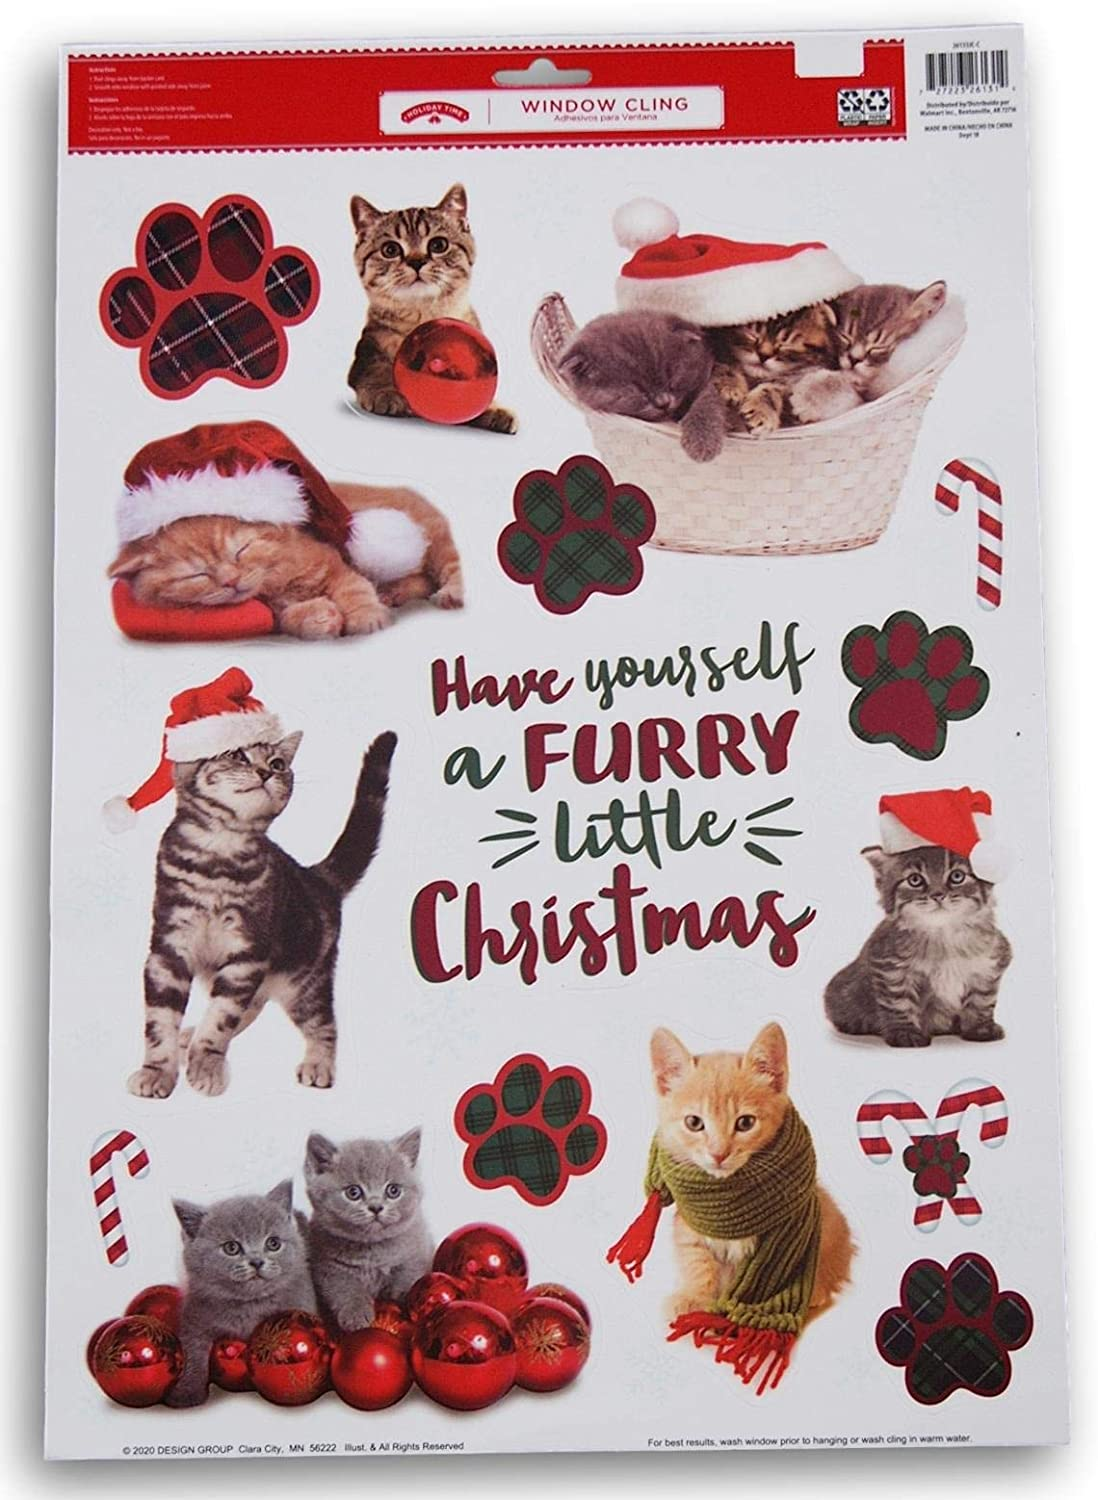 ''Have Yourself a Furry Little Christmas'' Cats and Kittens Window Clings - 15 Piece